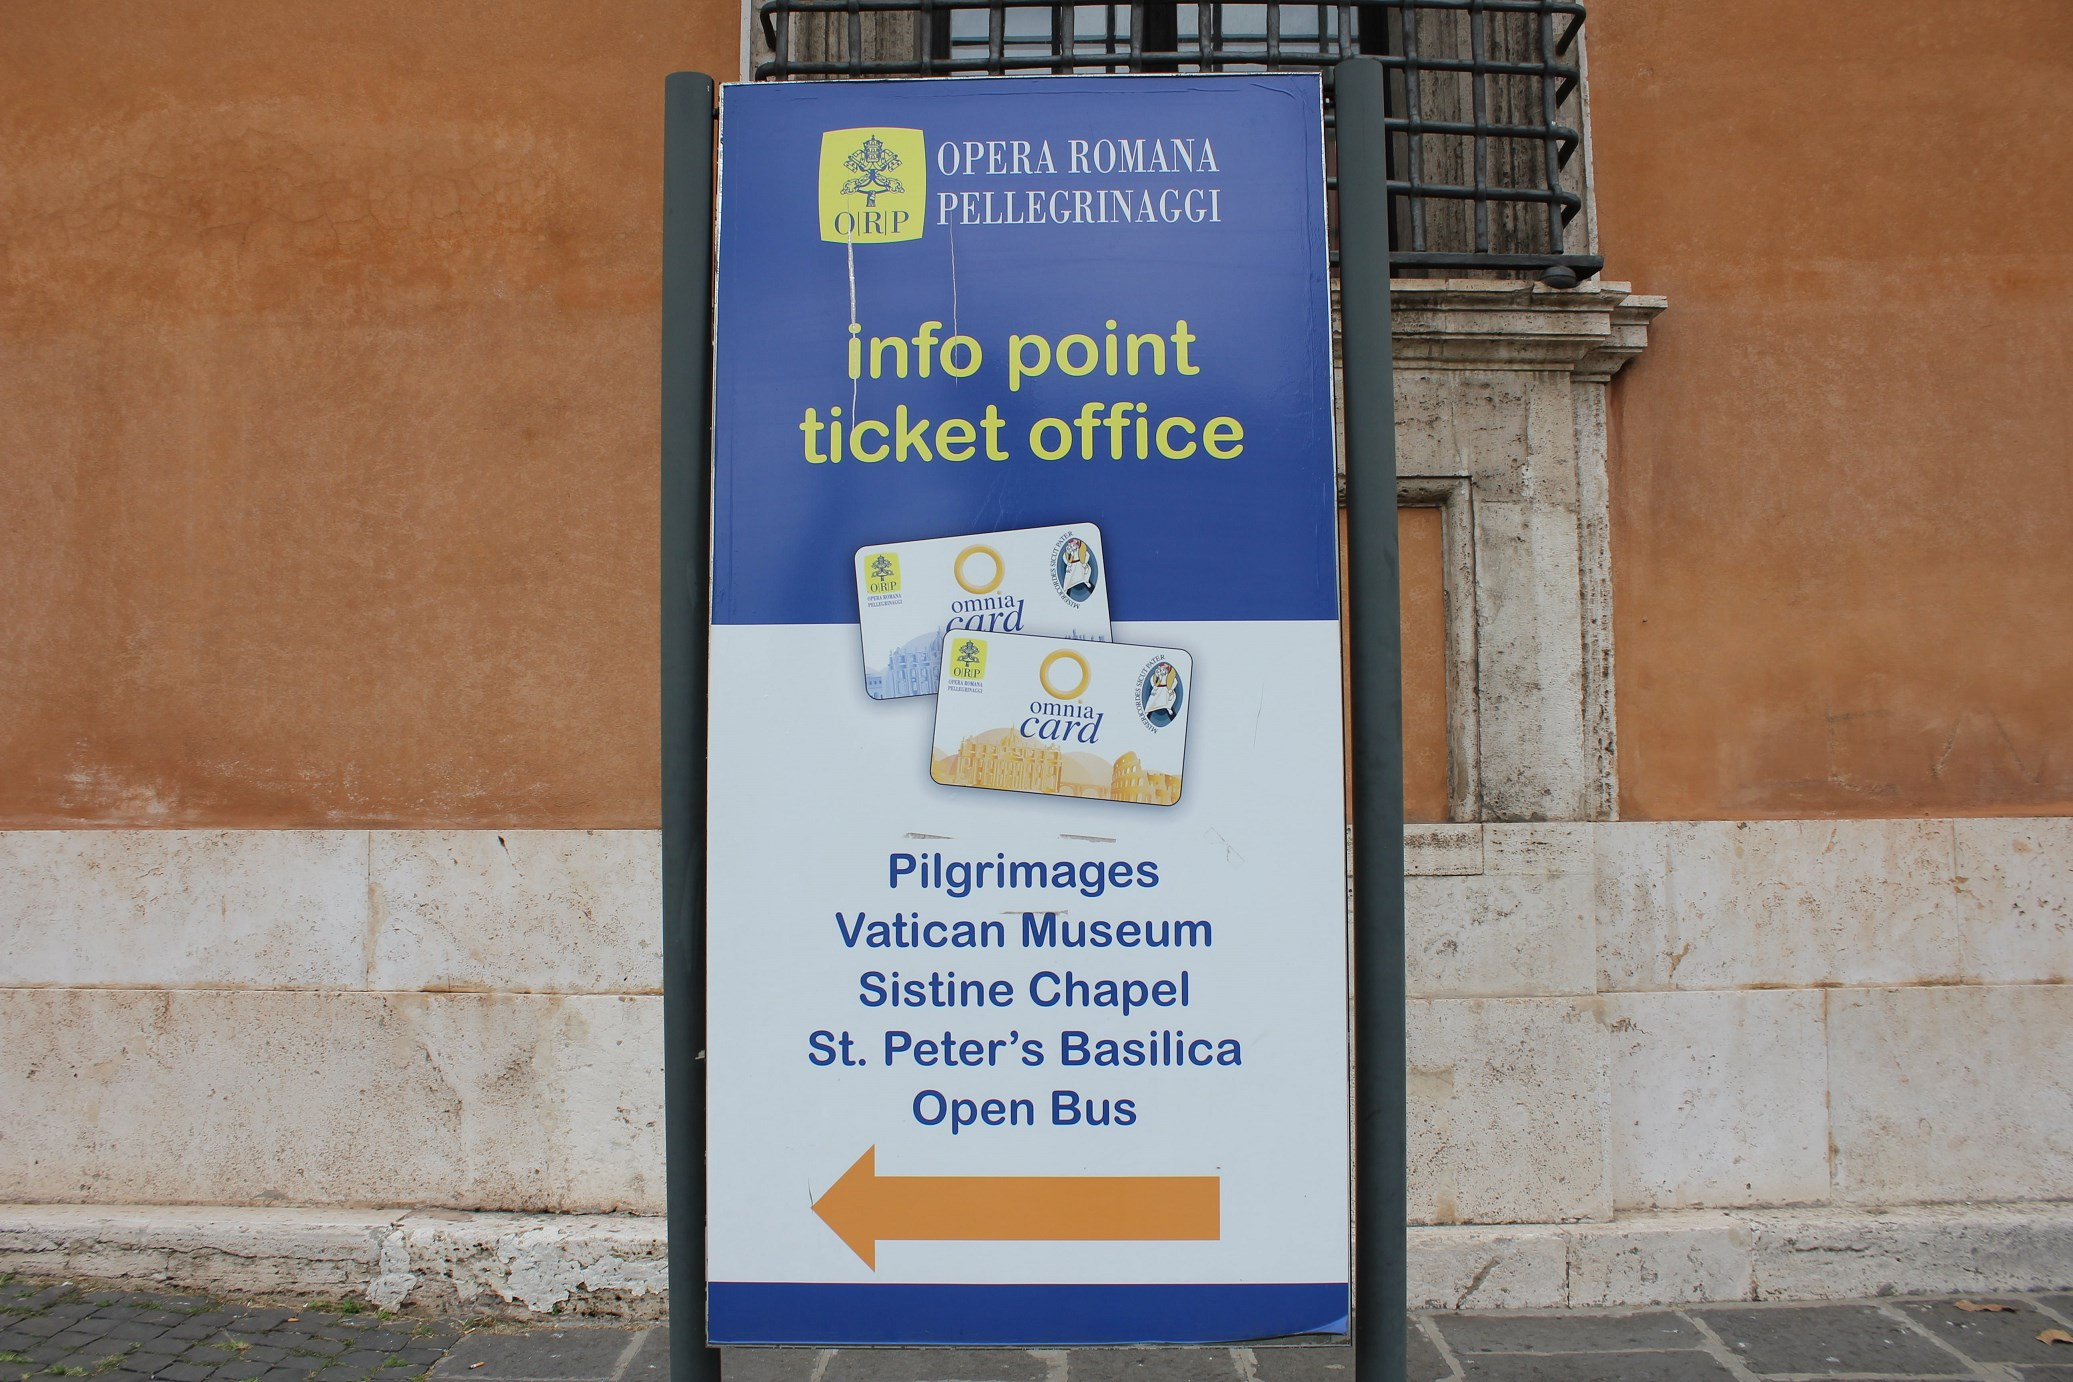 omnia card rome infos point